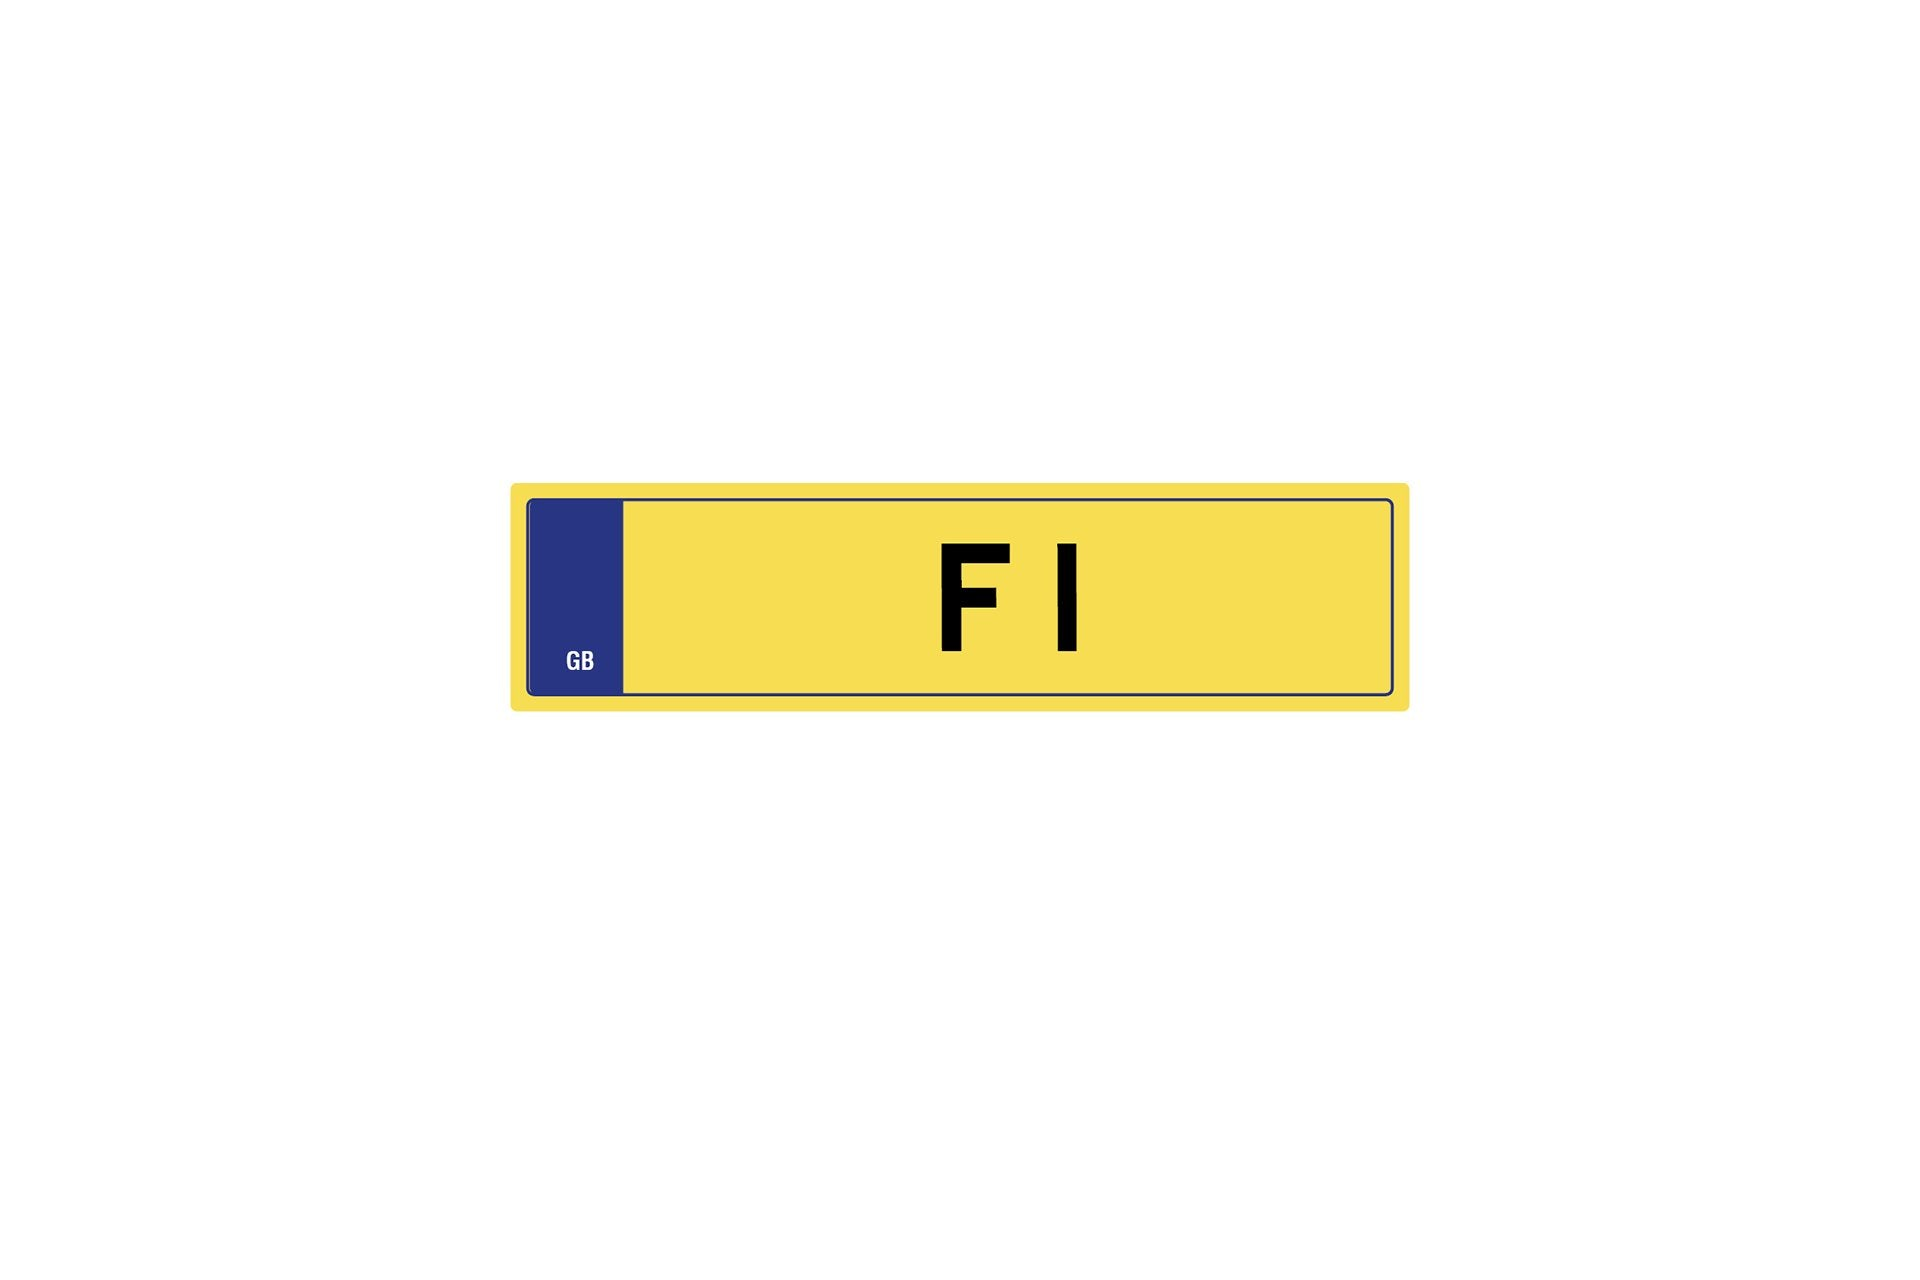 Private Plate F1 by Project Kahn - Image 291